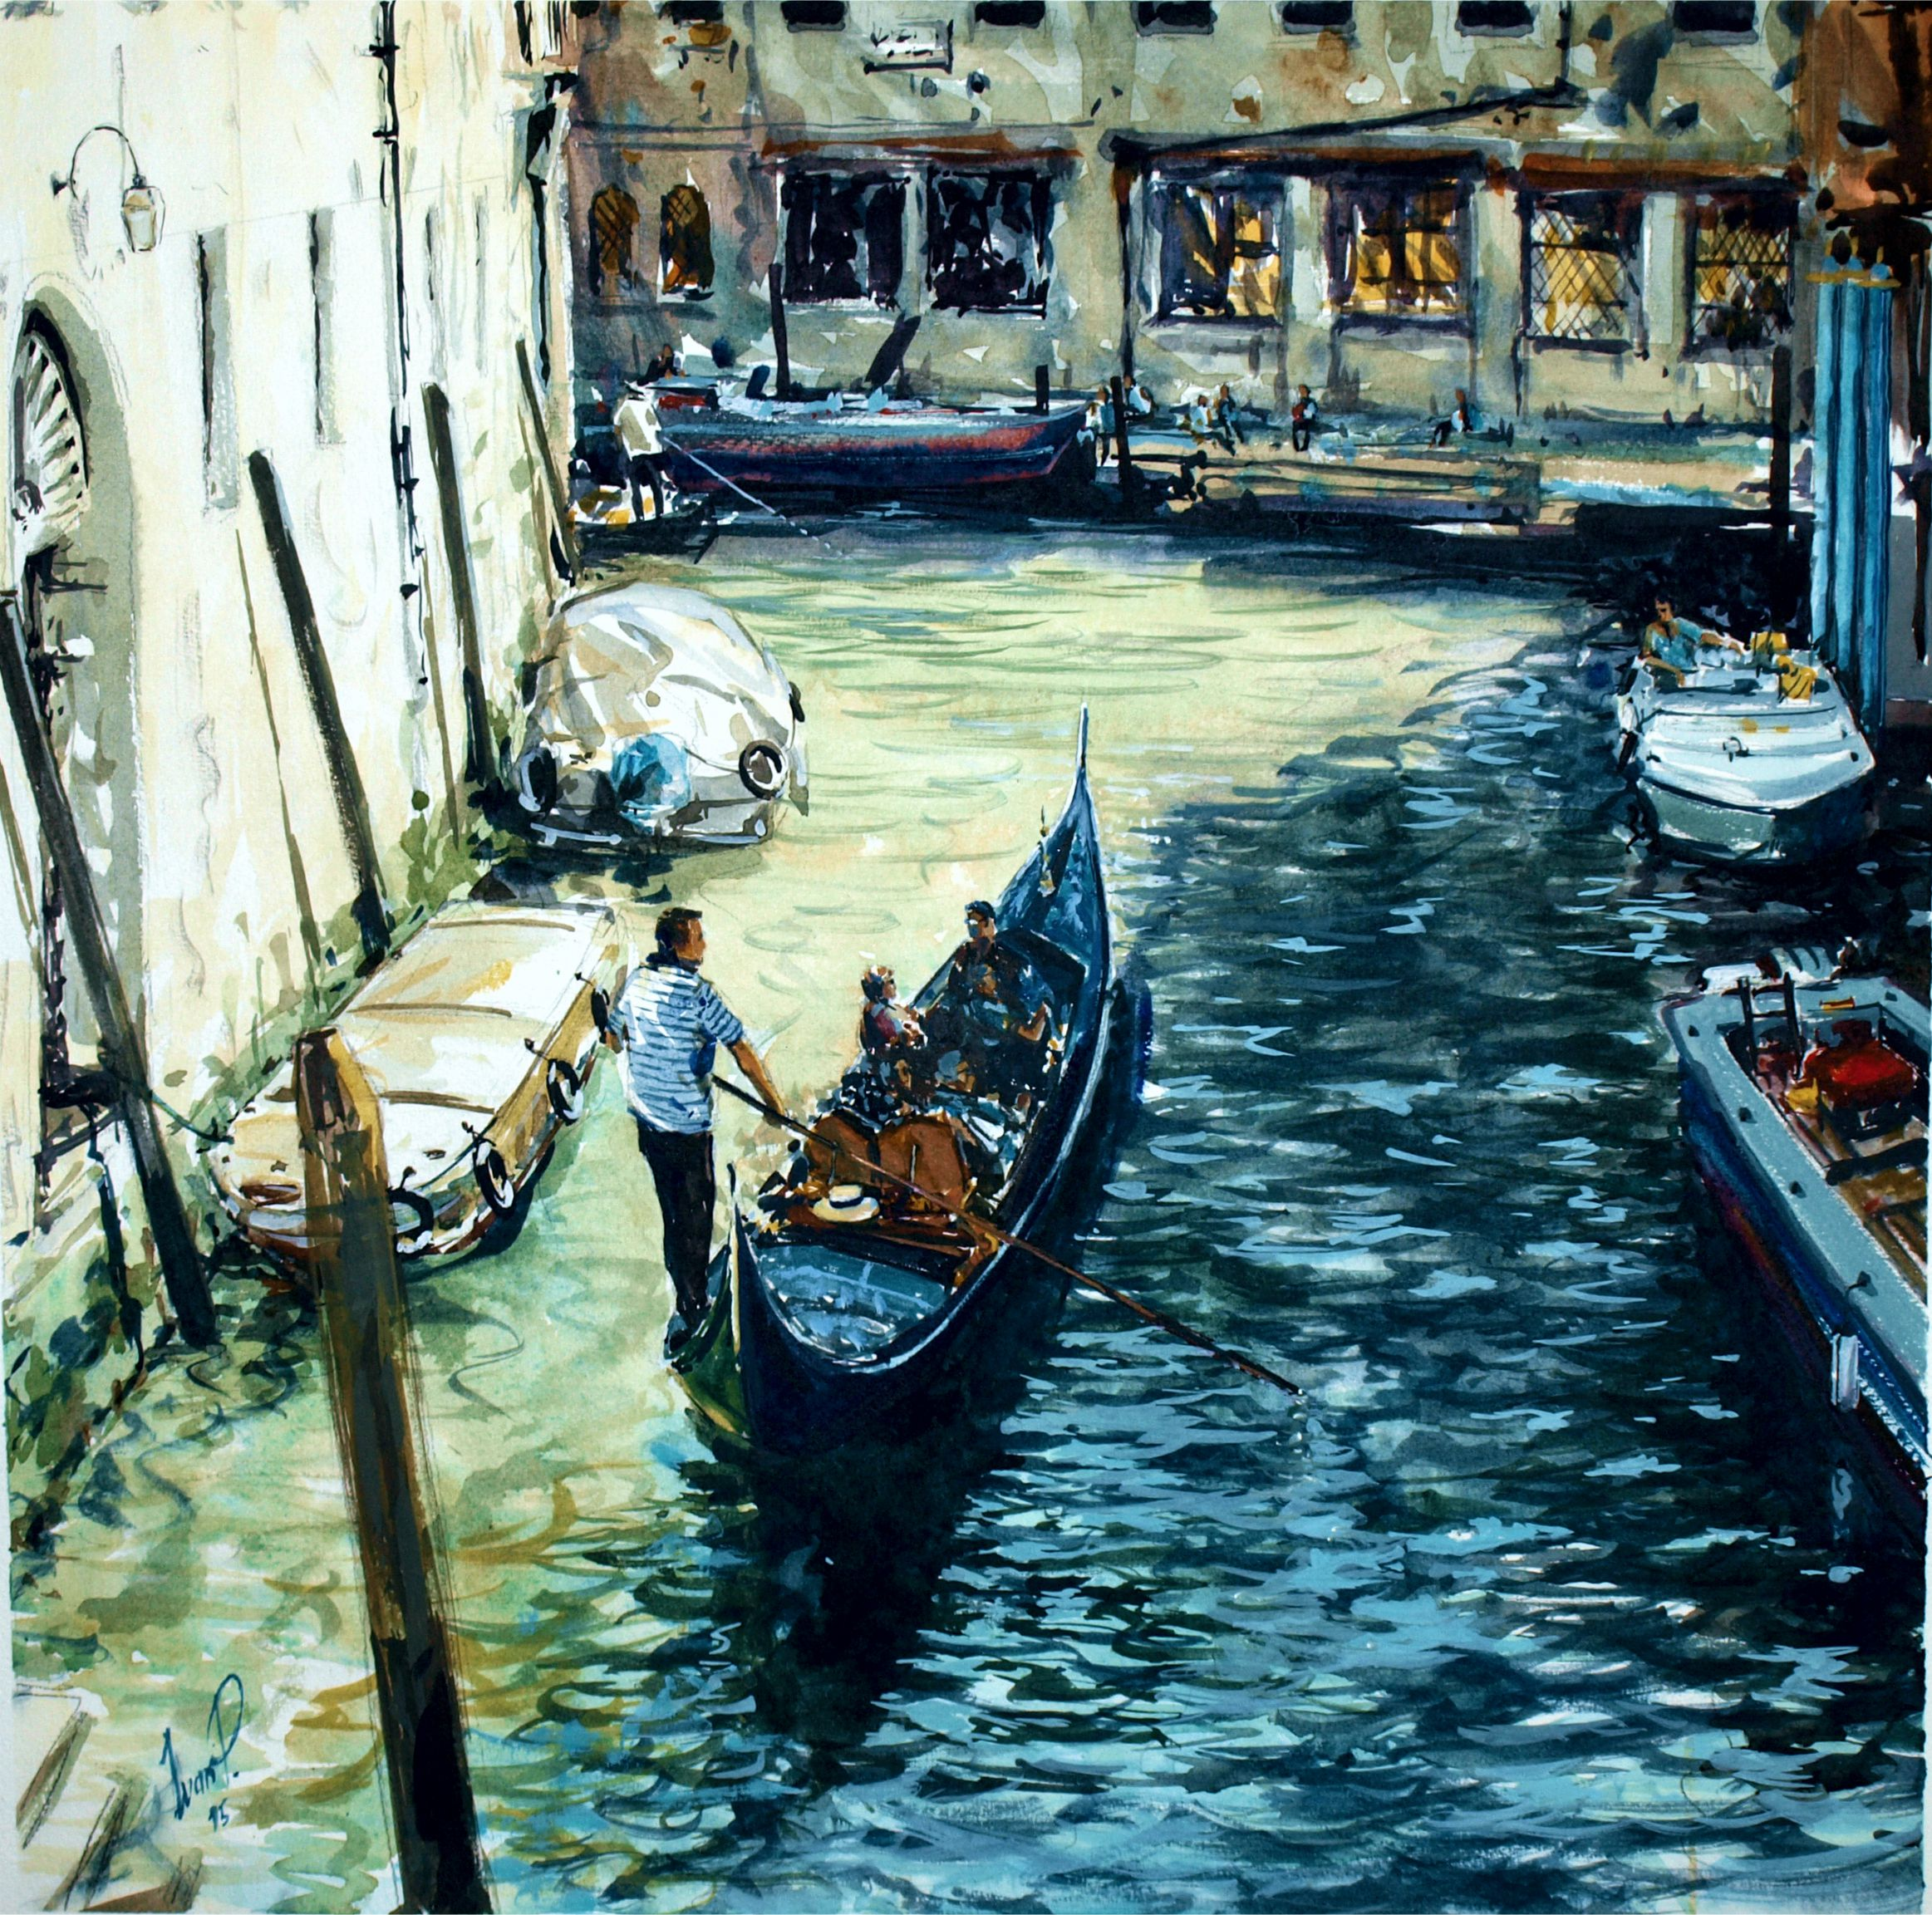 Venice canal view with gondola